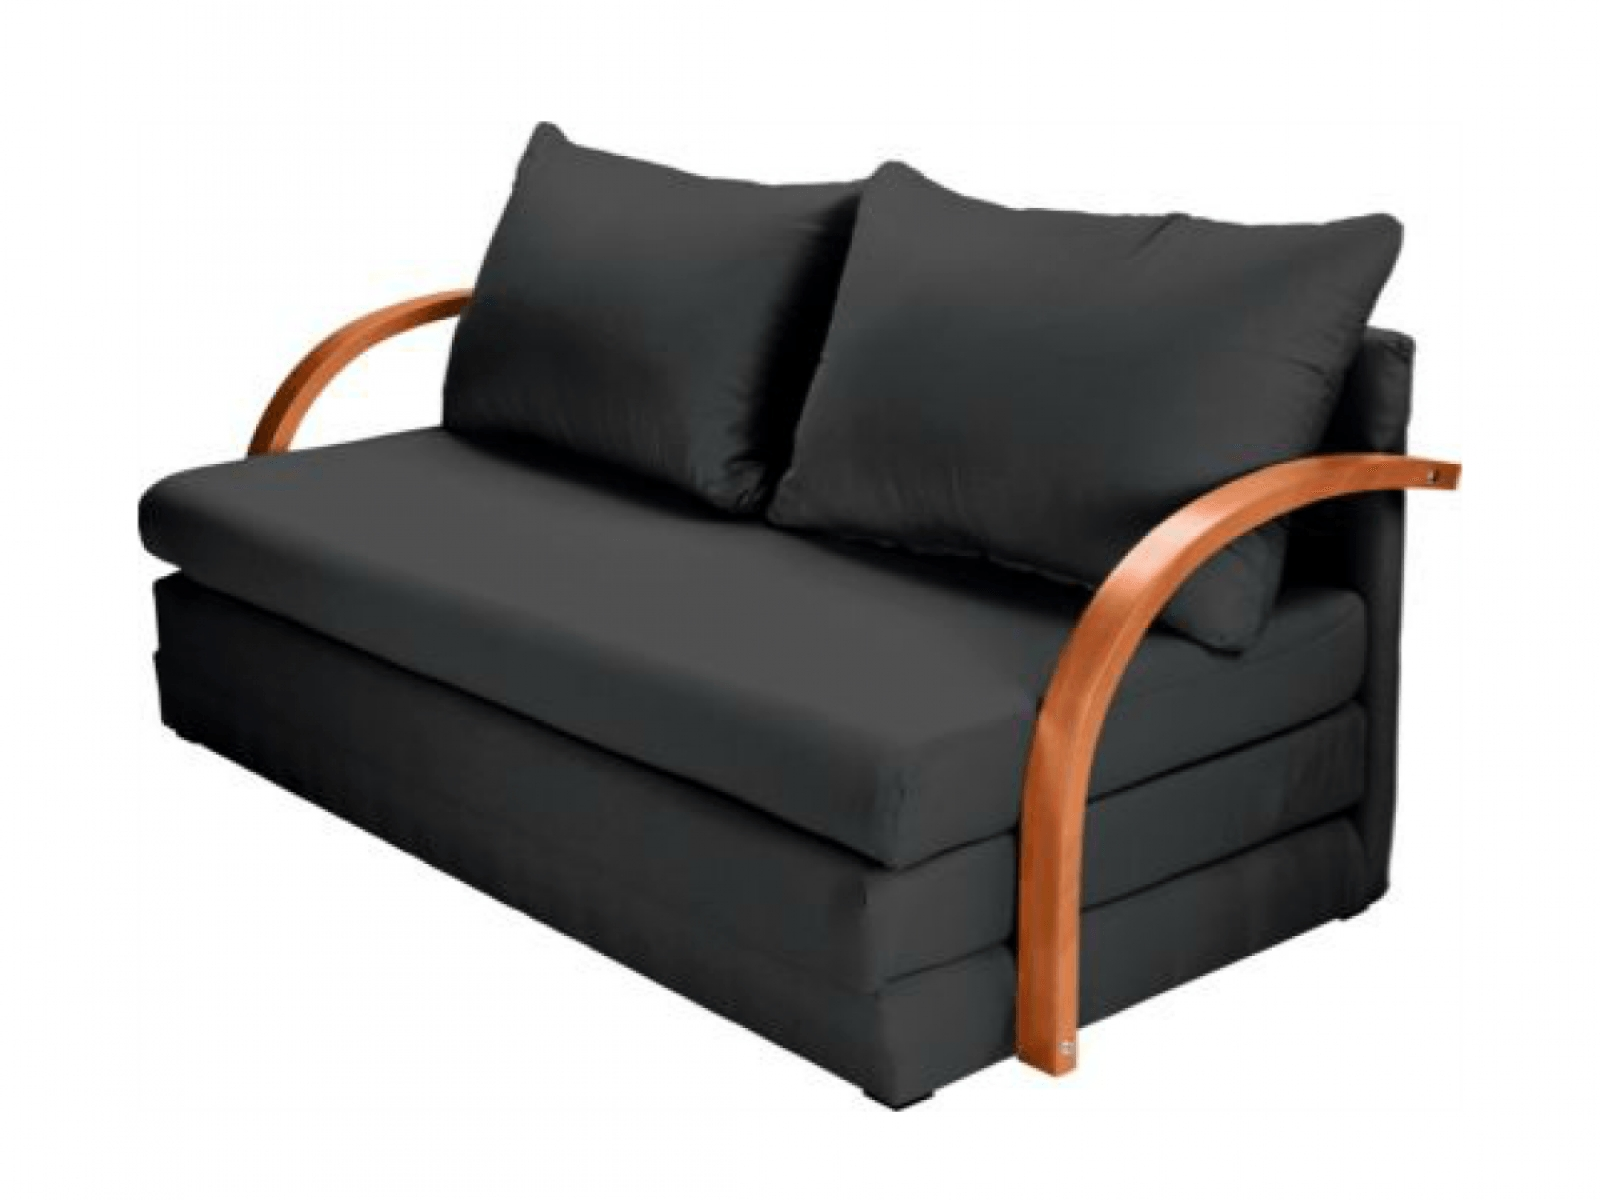 Sofas Center : Remarkable Sleeper Sofa Queen Size Stunning Modern Intended For Sears Sleeper Sofas (Image 10 of 20)